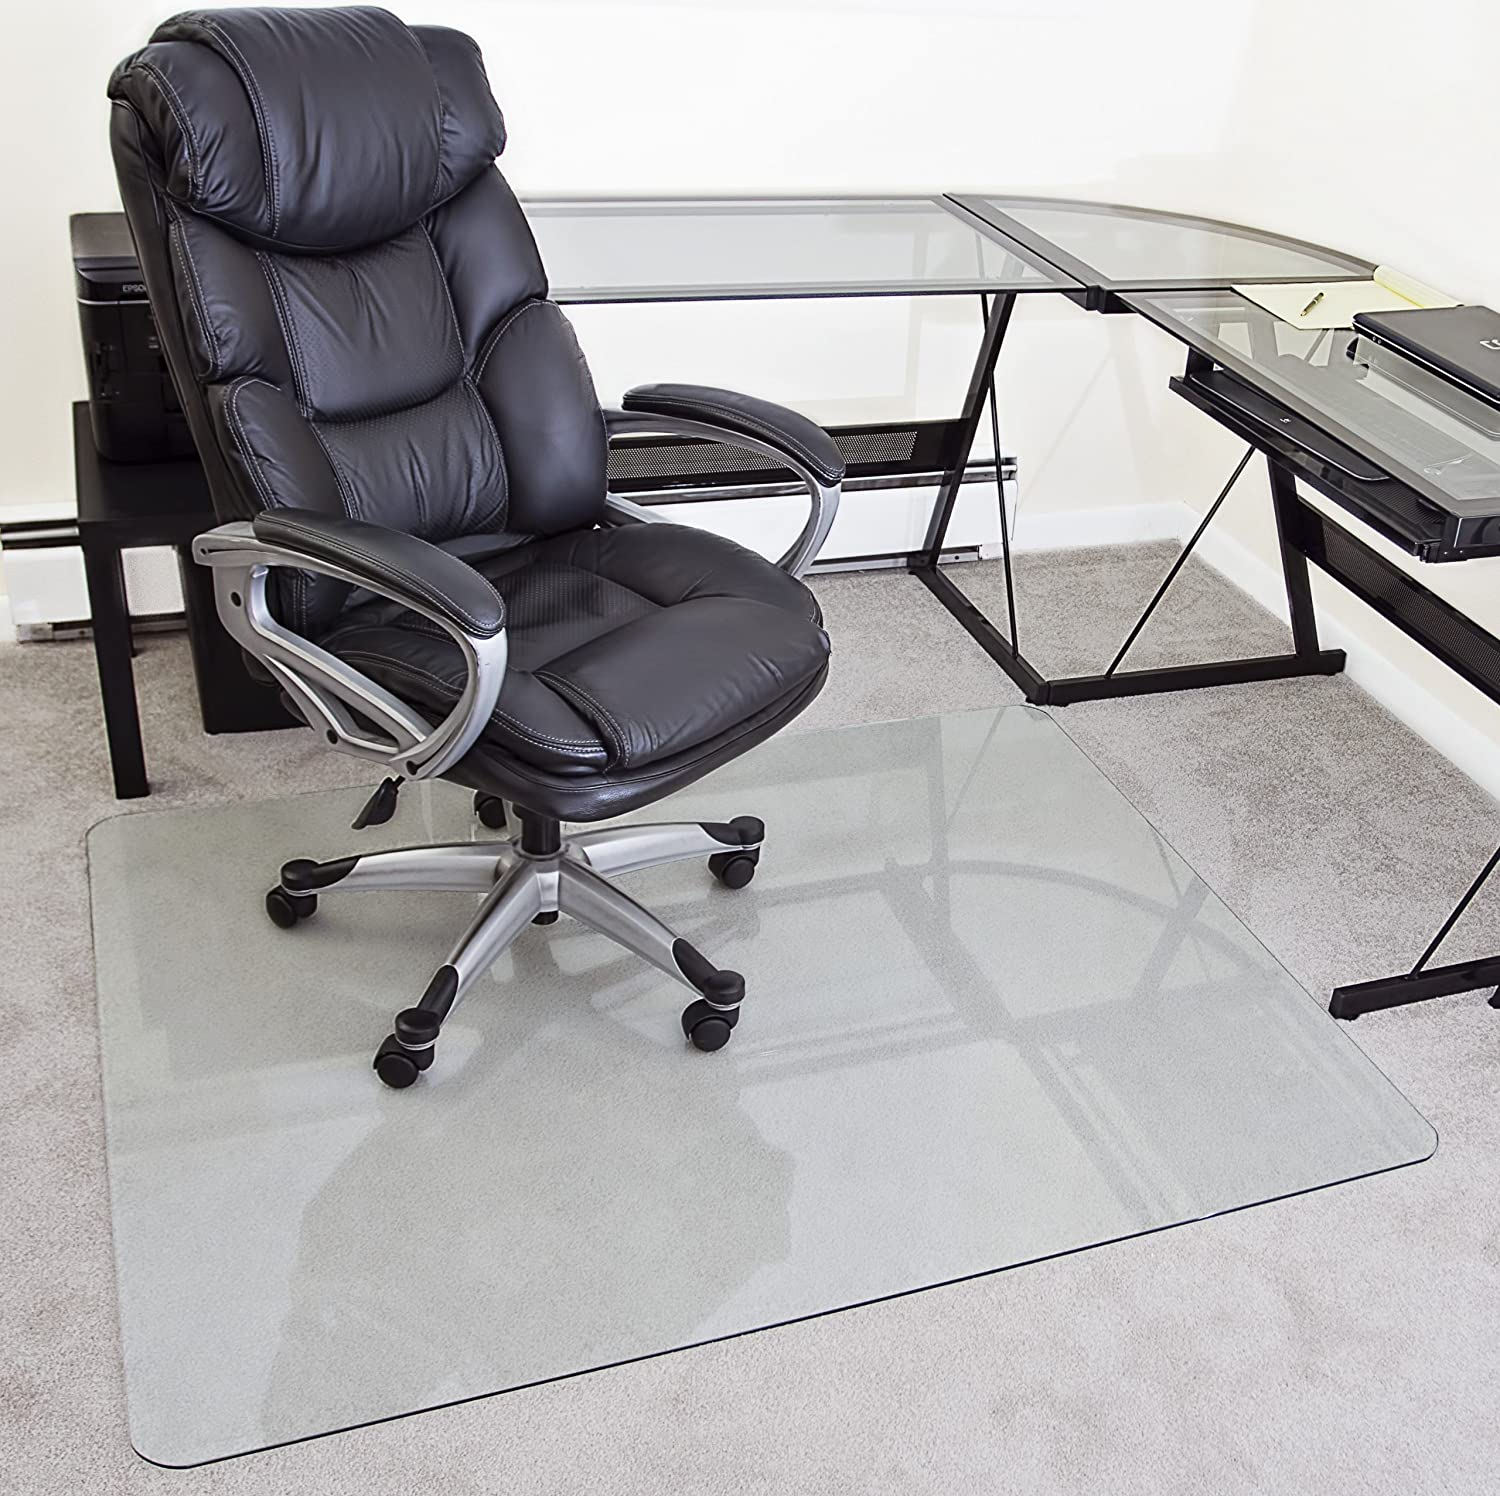 Amazon myGlassMat 48 x 60 Inch Tempered Glass Chair Mat for